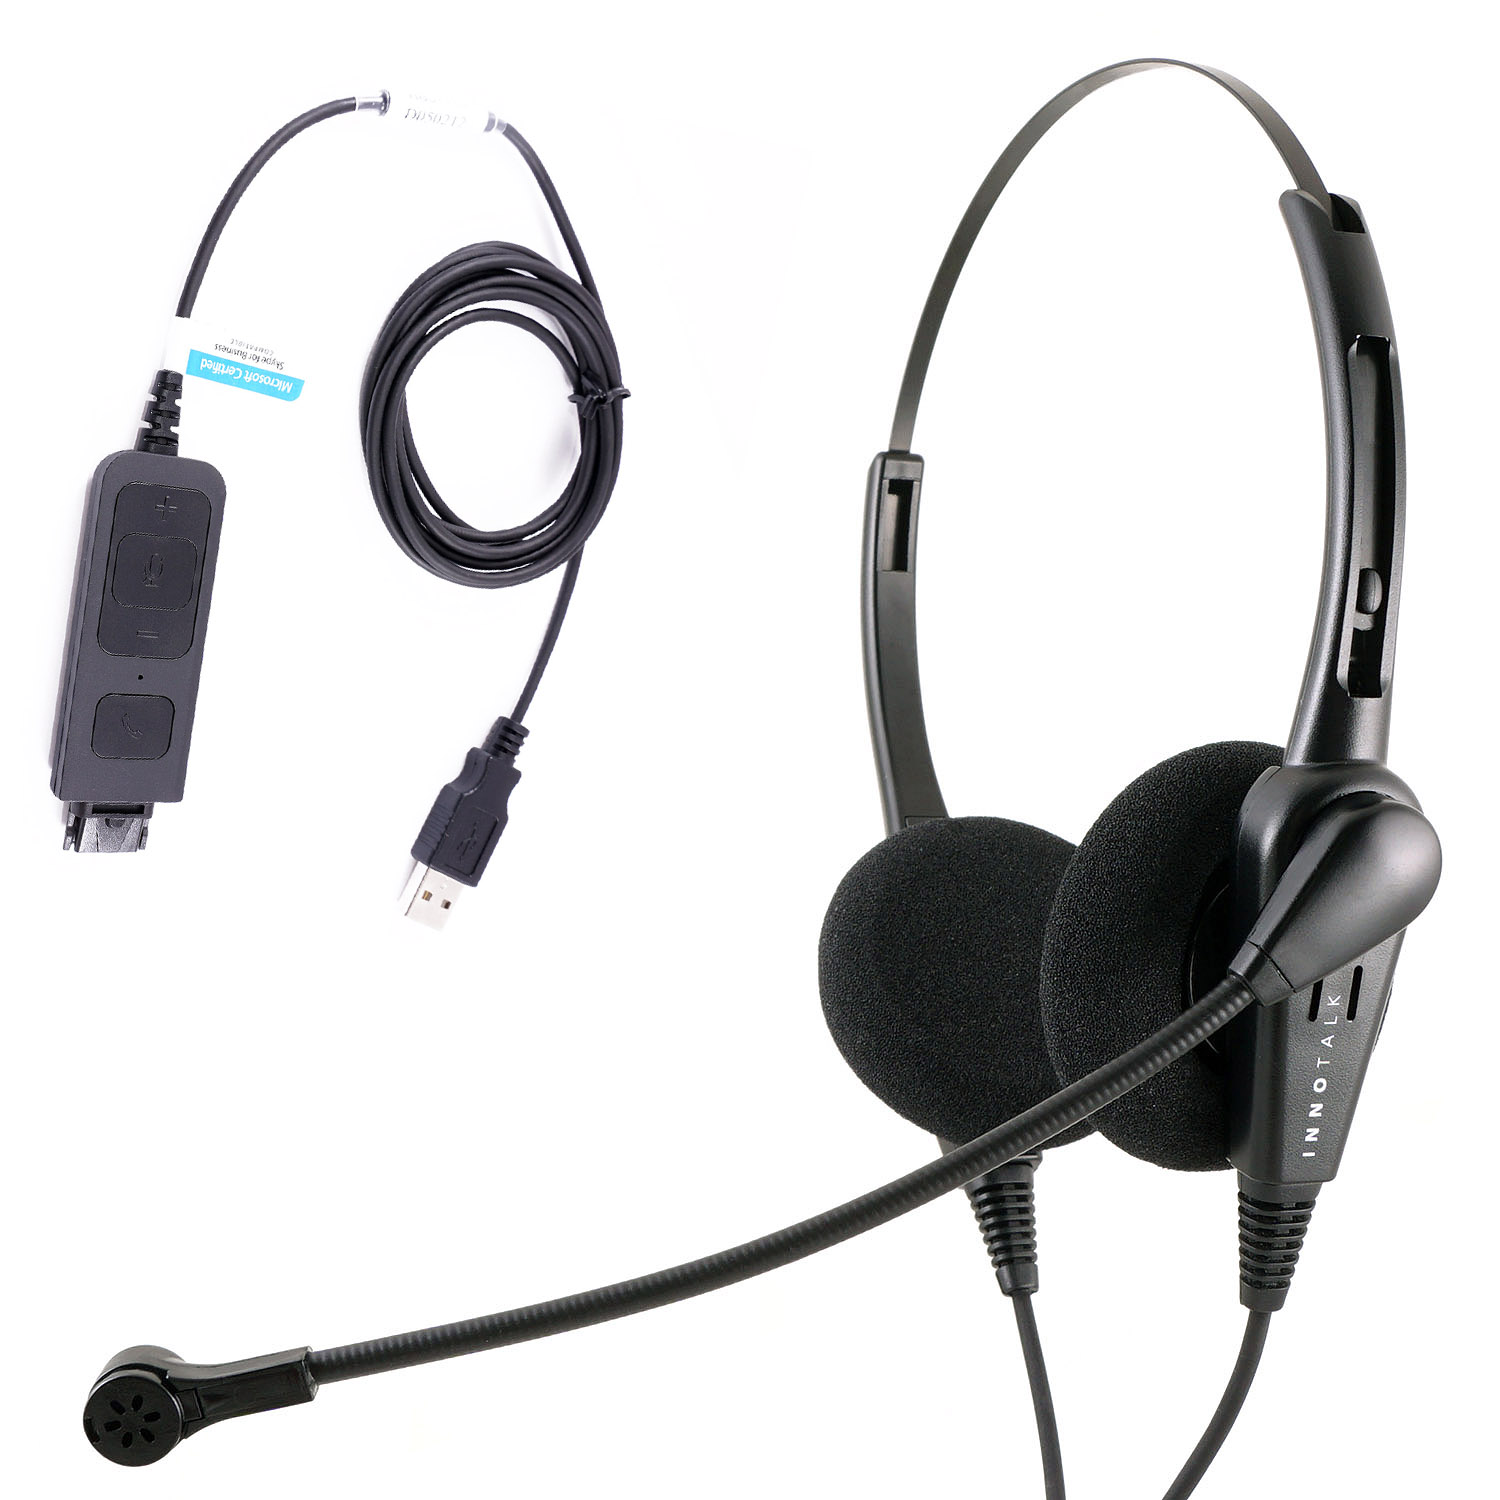 Economic Call Center Usb Binaural Pc Headset With Plug N Play Usb Headset For Ms Lync Skype Cisco Jabber Avaya One X Agent Plantronics Compatible Quick Disconnect Walmart Com Walmart Com